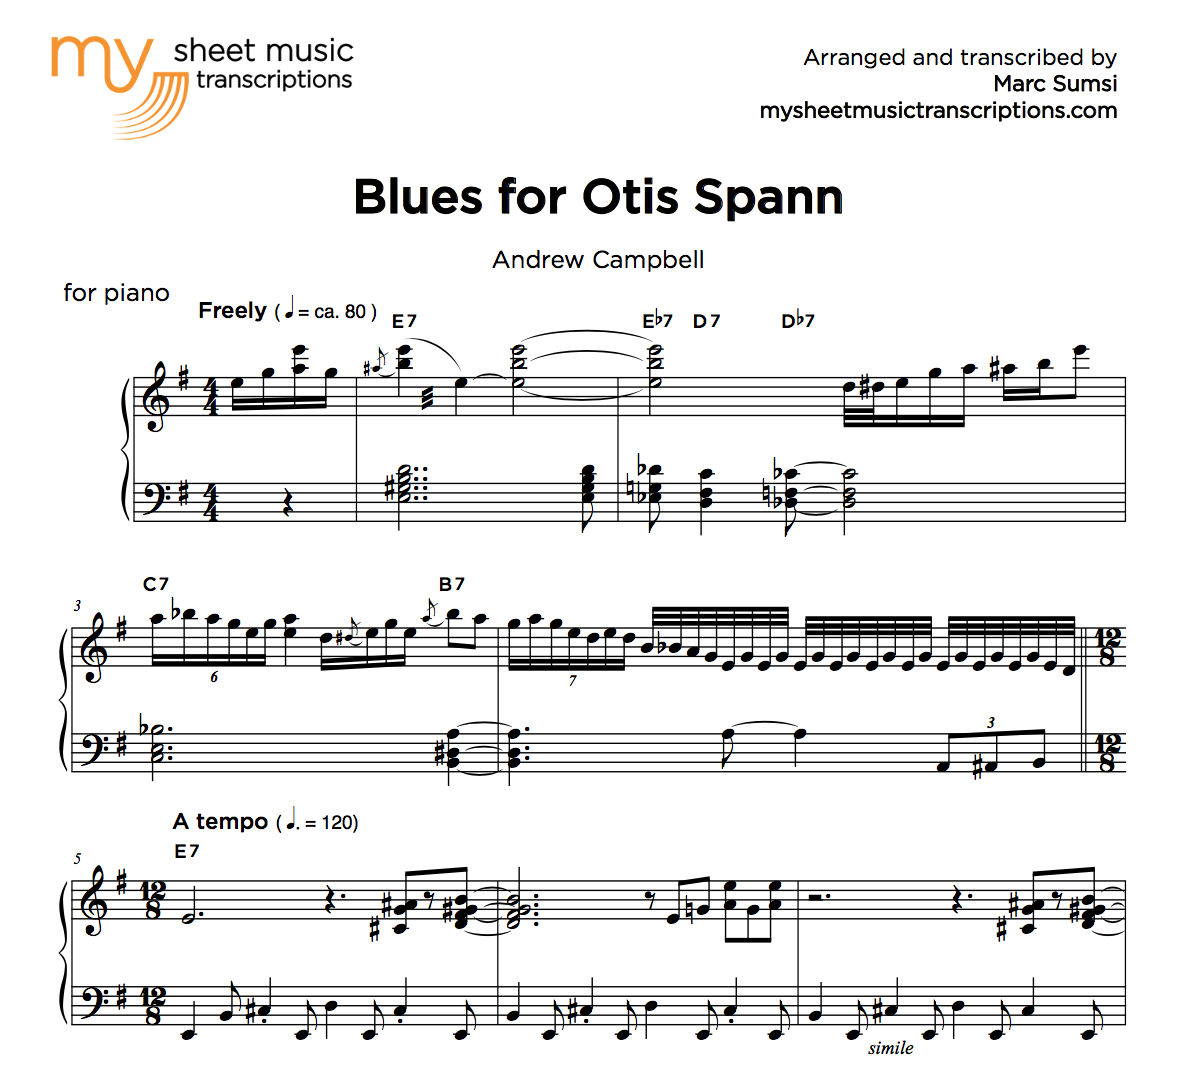 BLUES FOR OTIS SPANN (A  Campbell) - MSMT-1 • My Sheet Music